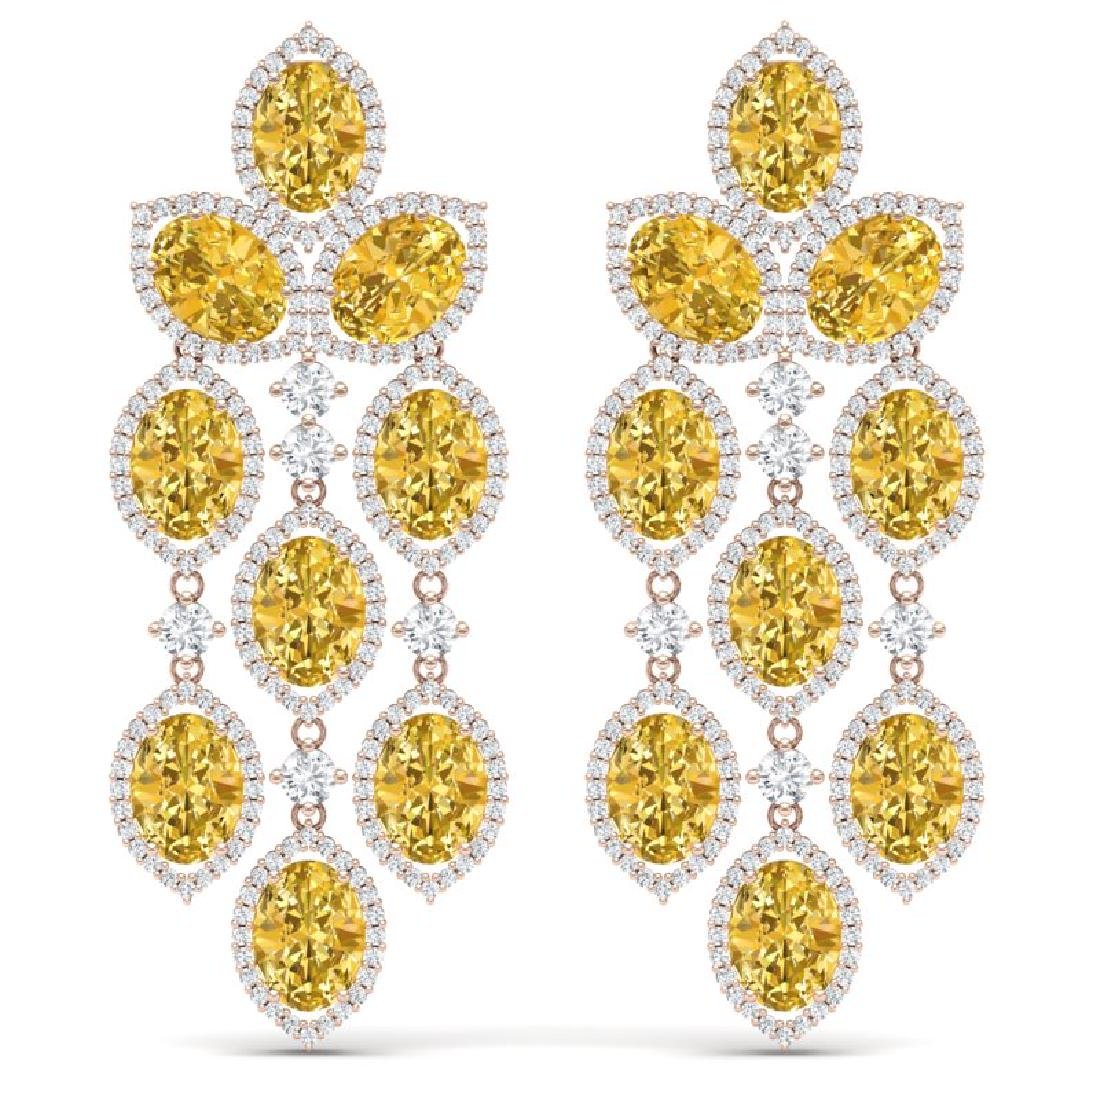 24.54 CTW Royalty Canary Citrine & VS Diamond Earrings